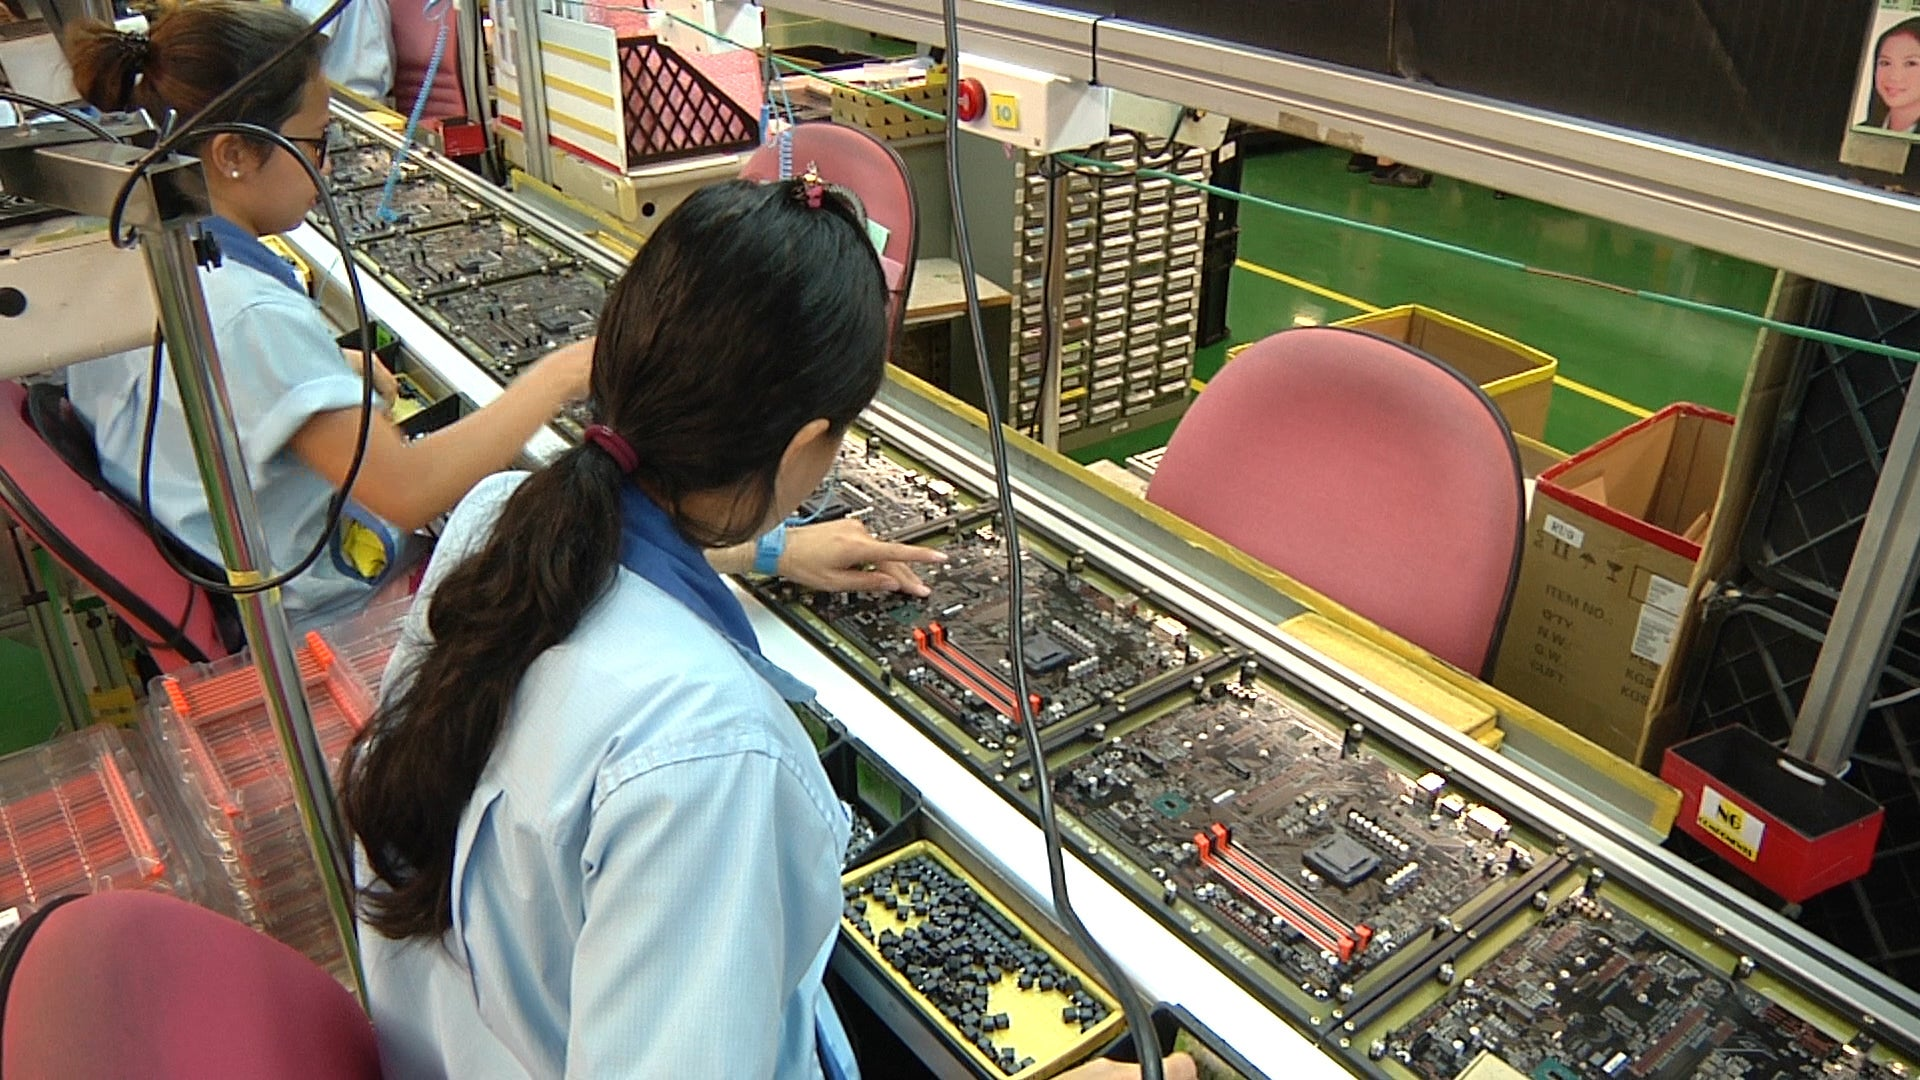 gigabyte motherboard factory